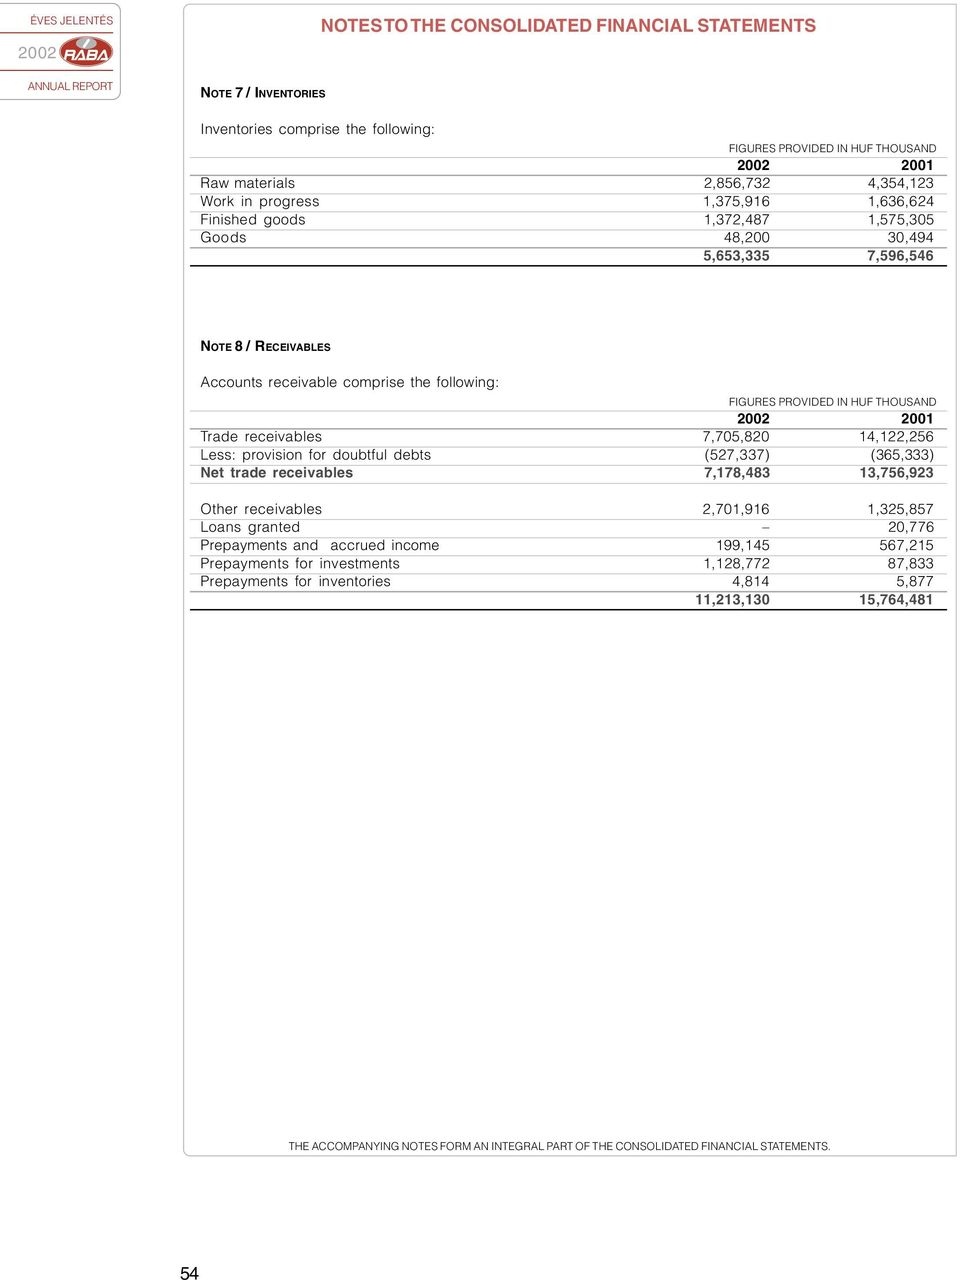 14,122,256 Less: provisio for doubful debs (527,337) (365,333) Ne rade receivables 7,178,483 13,756,923 Oher receivables 2,701,916 1,325,857 Loas graed 20,776 Prepaymes ad accrued icome